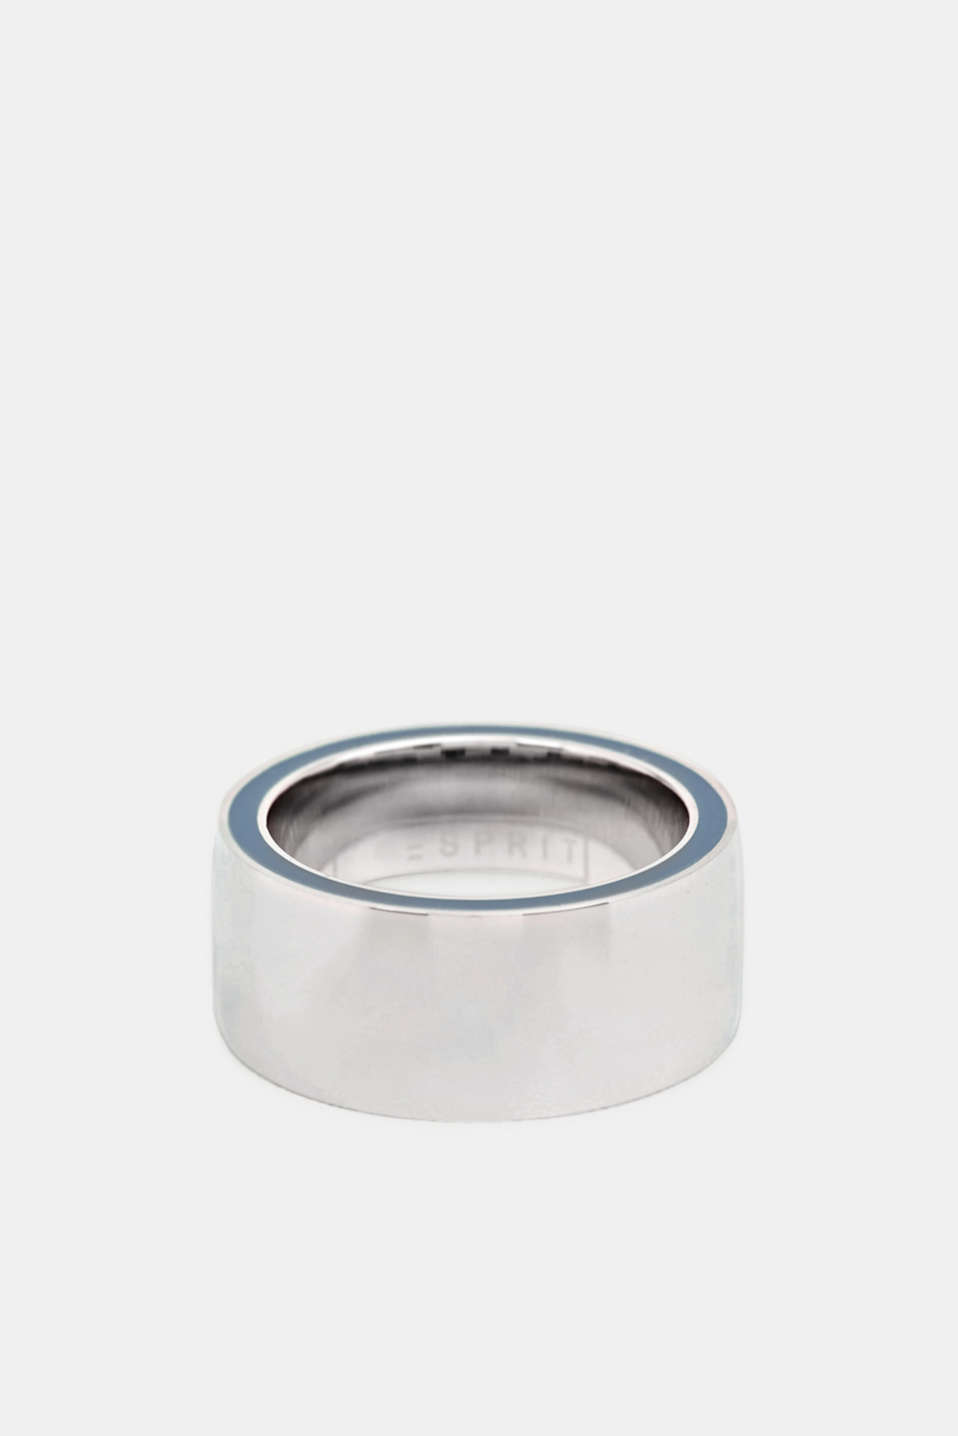 Ring with a blue detail, stainless steel, LCSILVER, detail image number 0